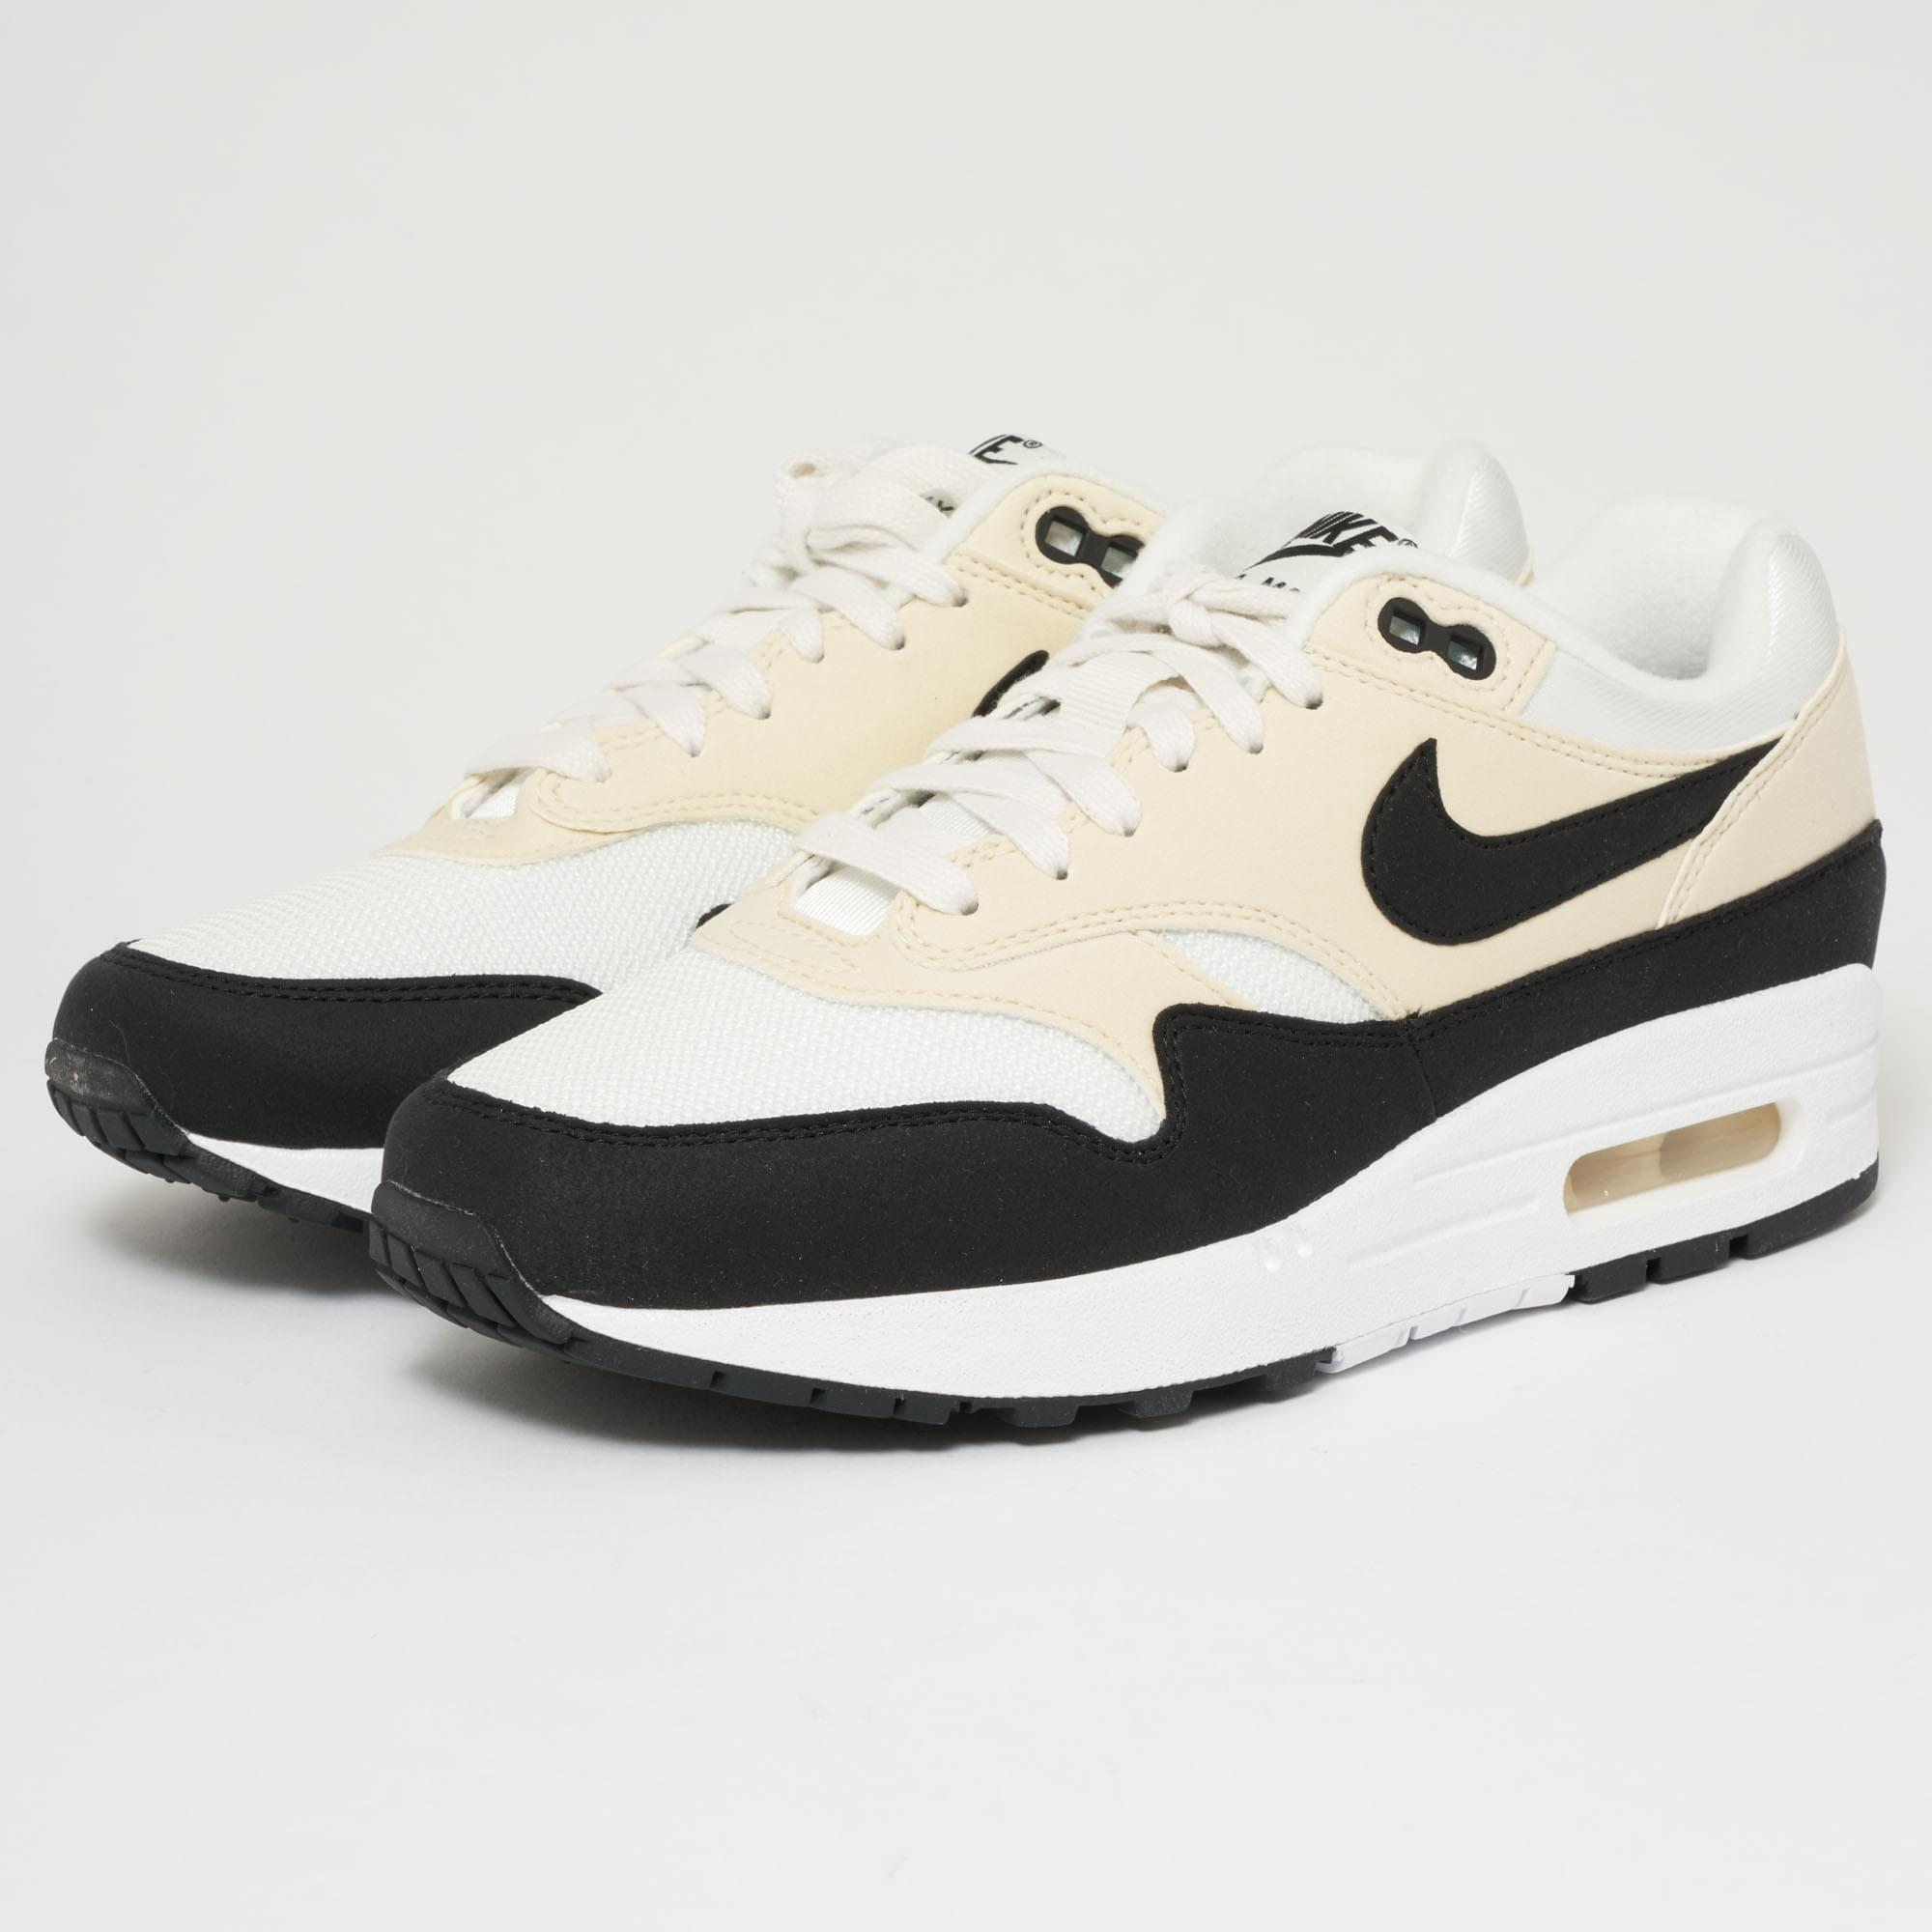 5ab2796dbc Gallery. Previously sold at: Stuarts London · Women's Nike Air Max Women's Nike  Air Max 1